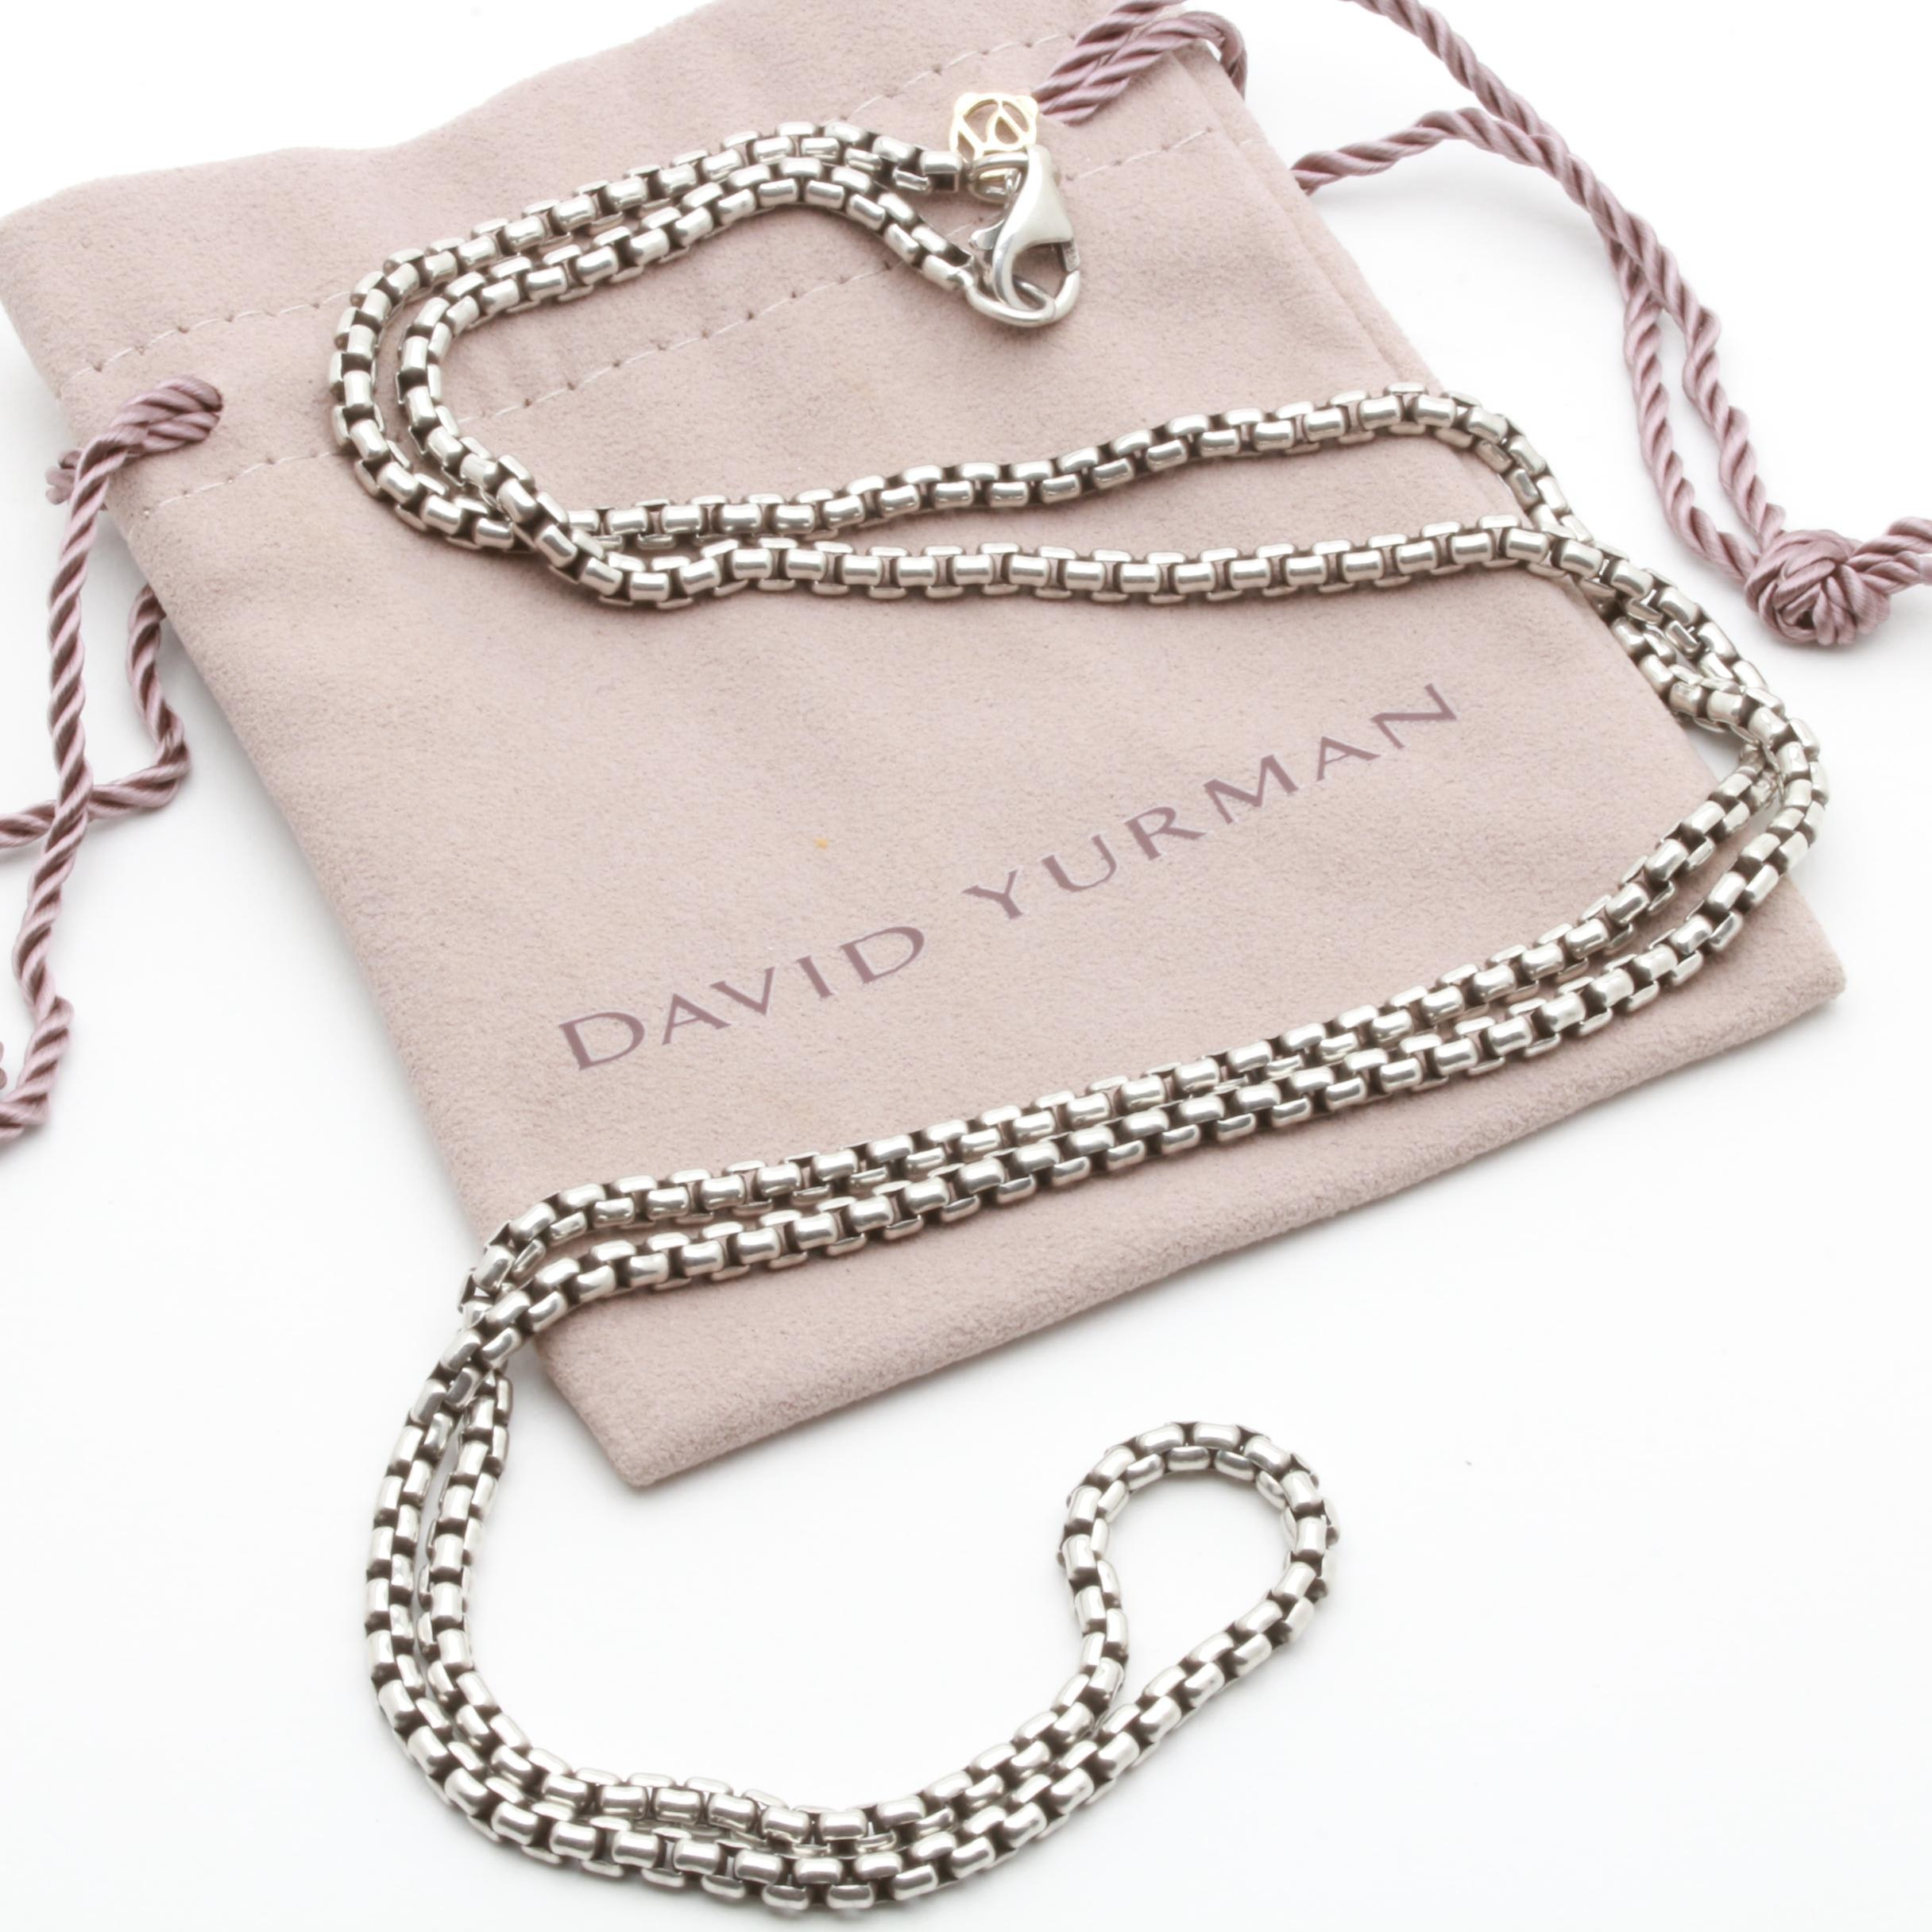 David Yurman Sterling Silver Box Chain Necklace with 18K Gold Hang Tag